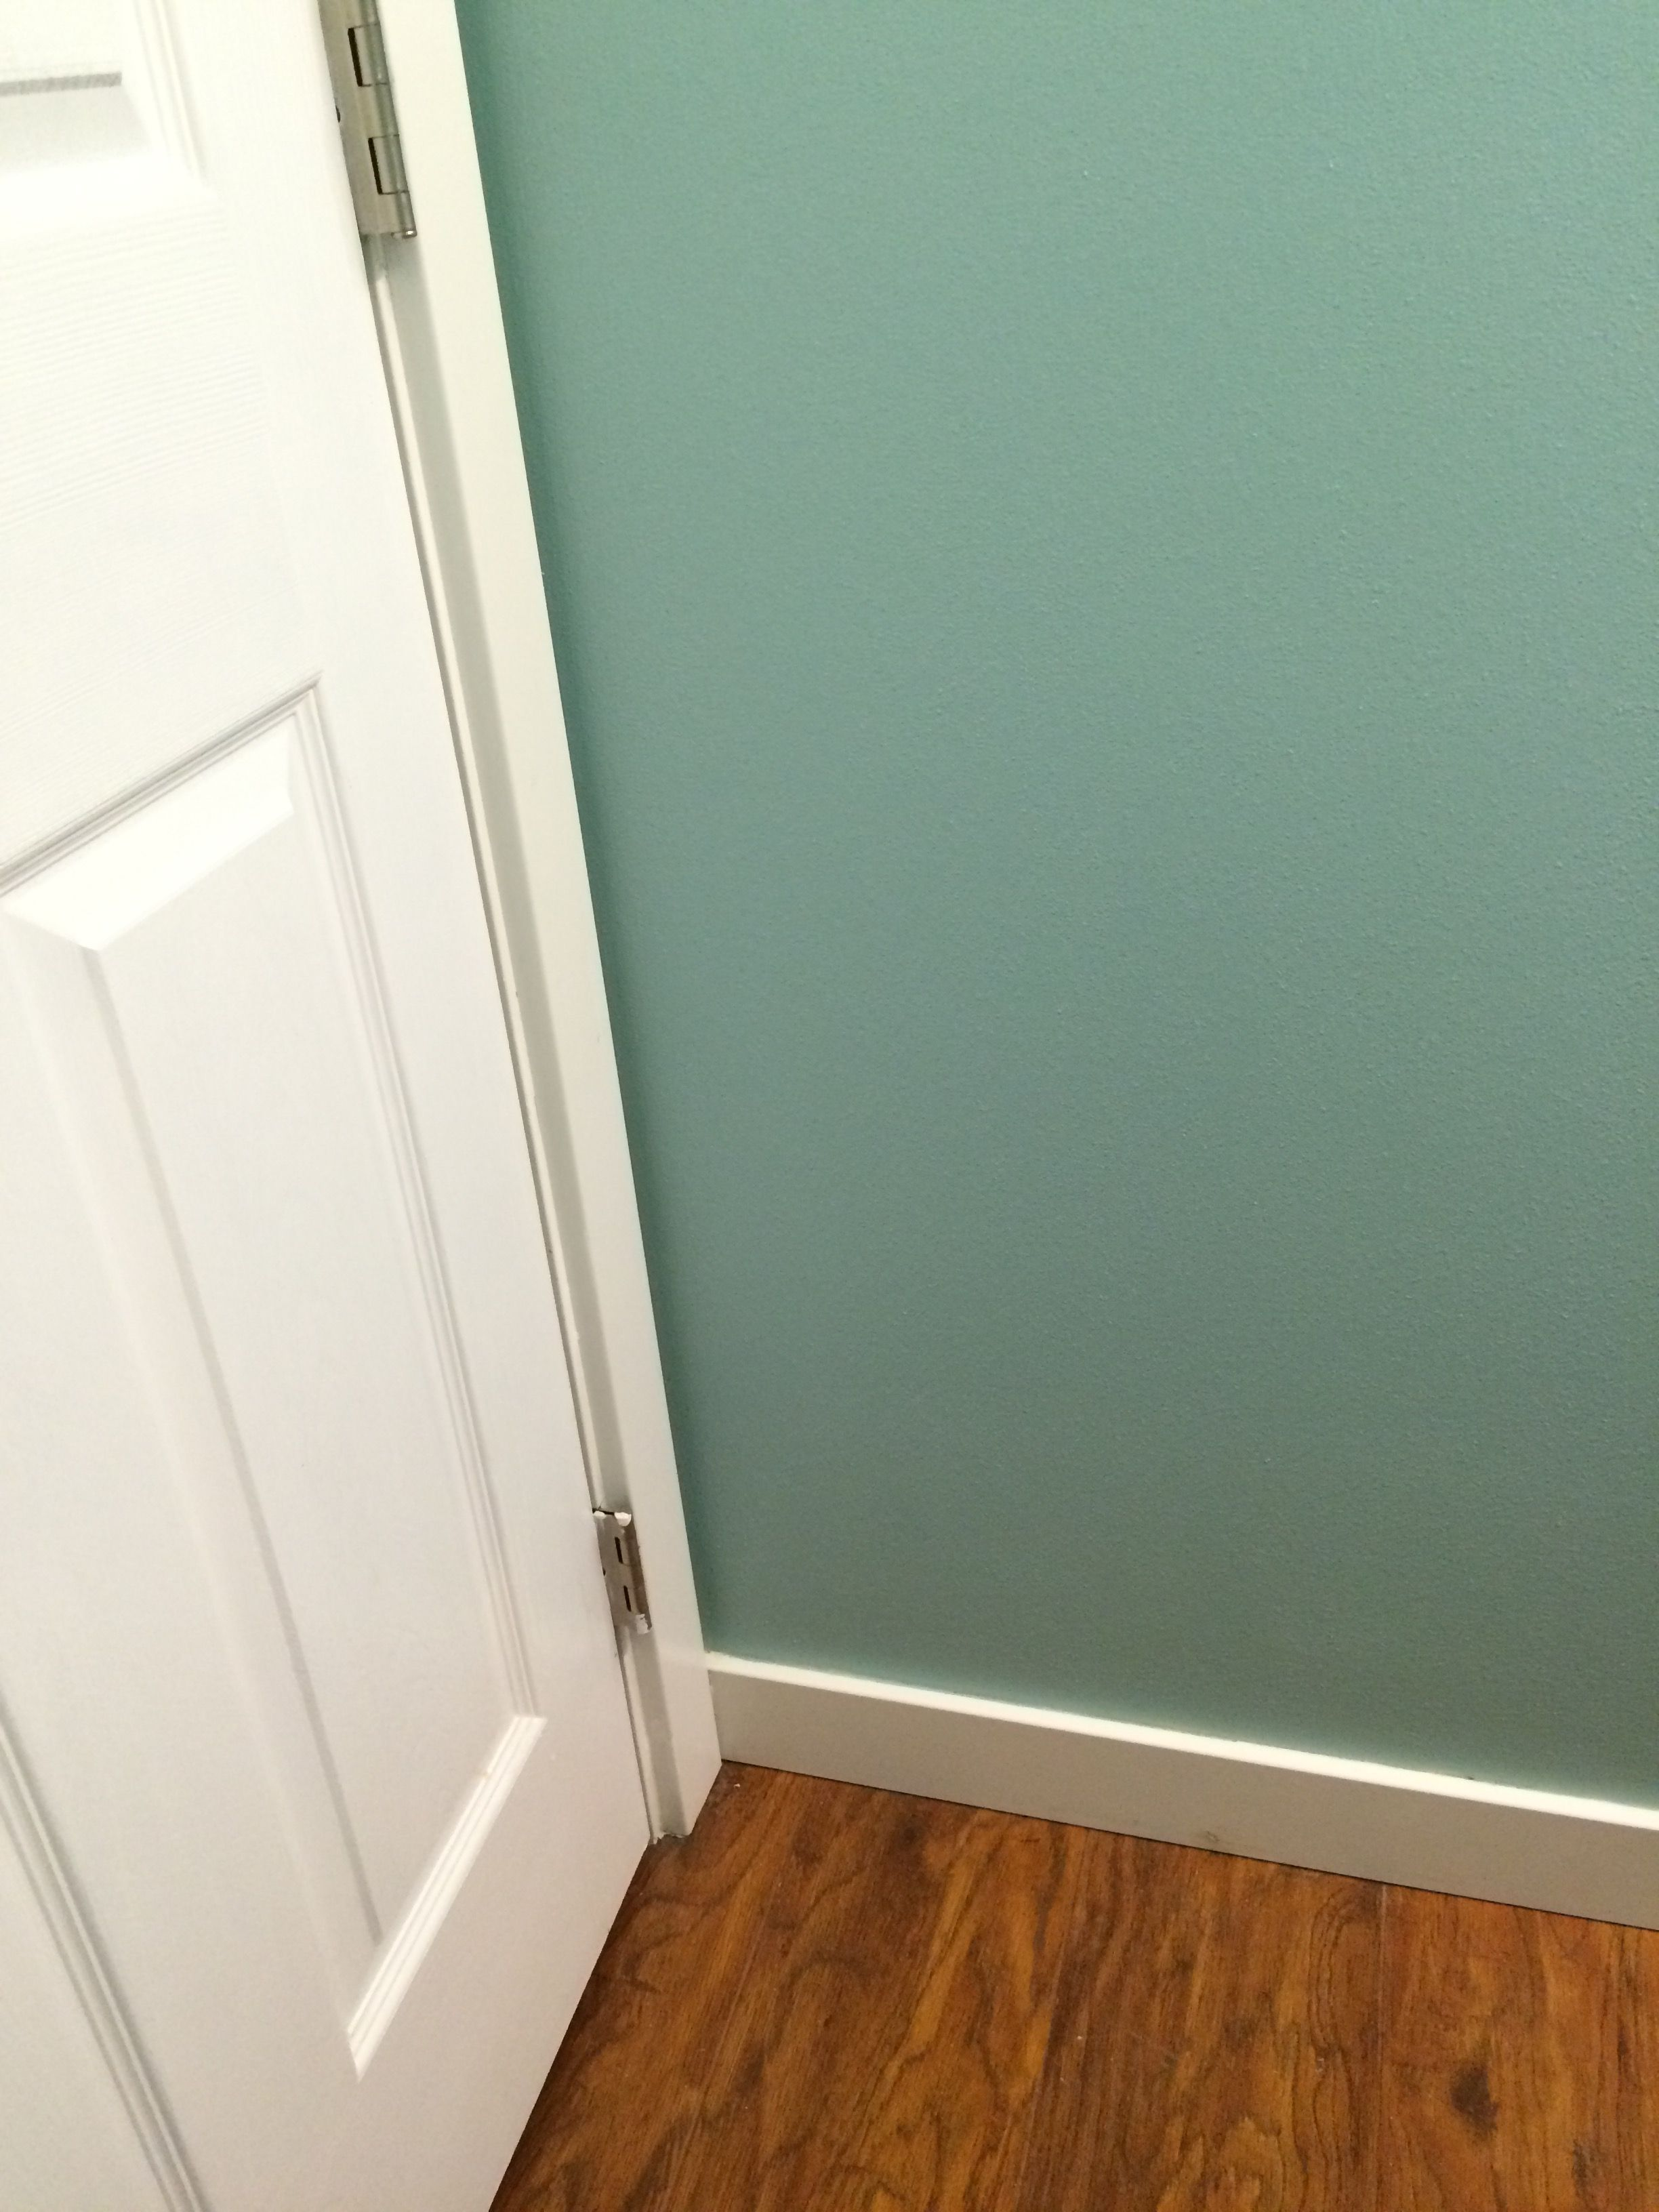 Aqua Verde Sherwin Williams With Images Updating House